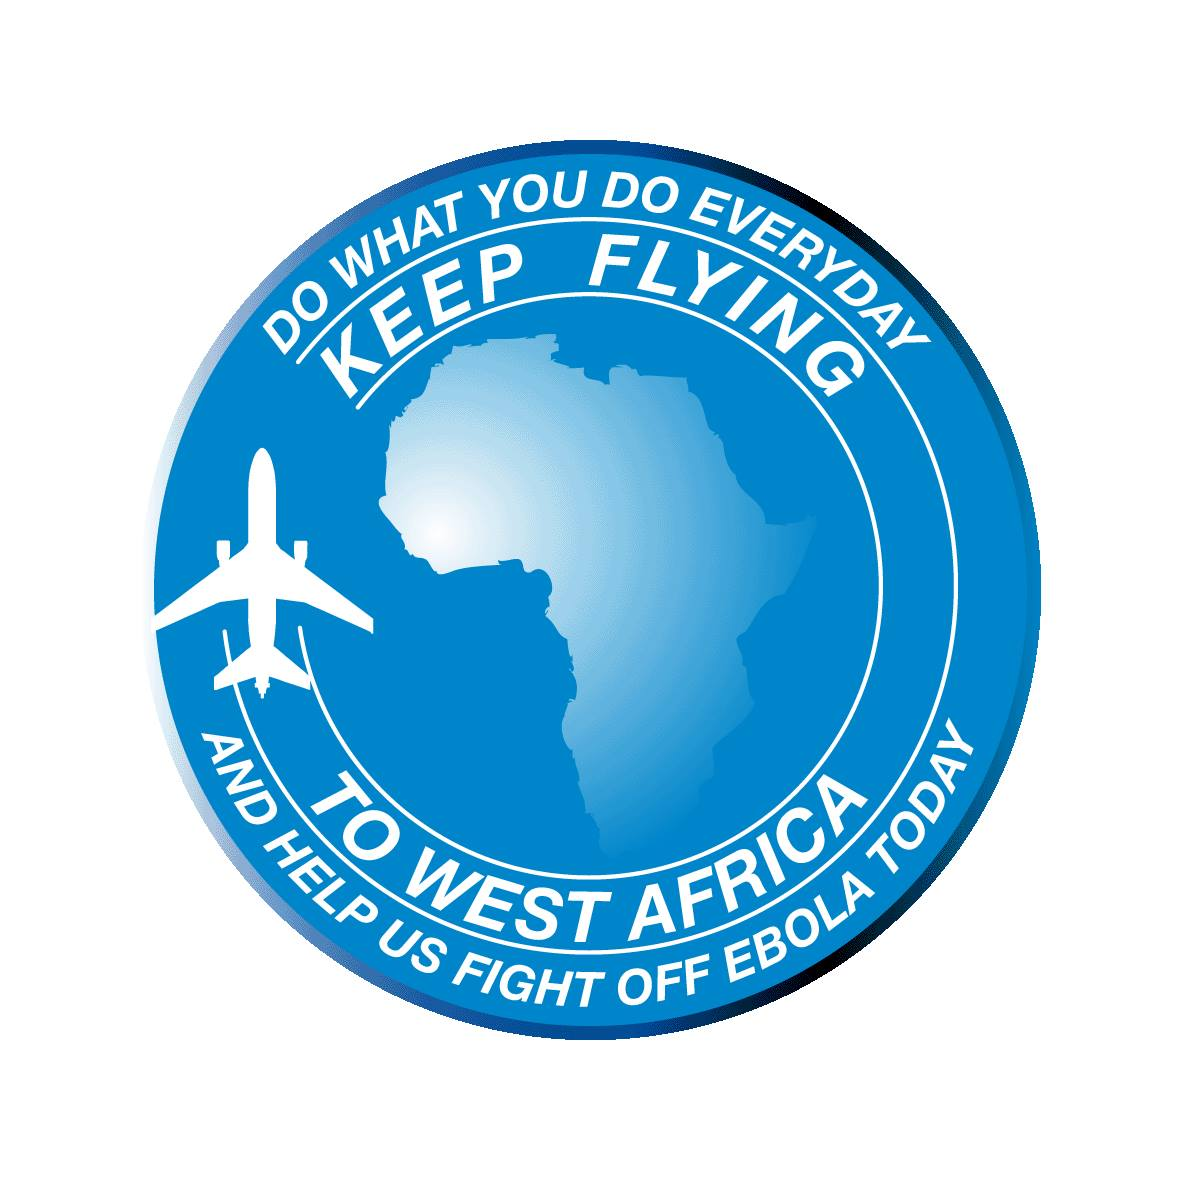 Do what you do everyday - Keep Flying to West Africa and help us to fight off Ebola today